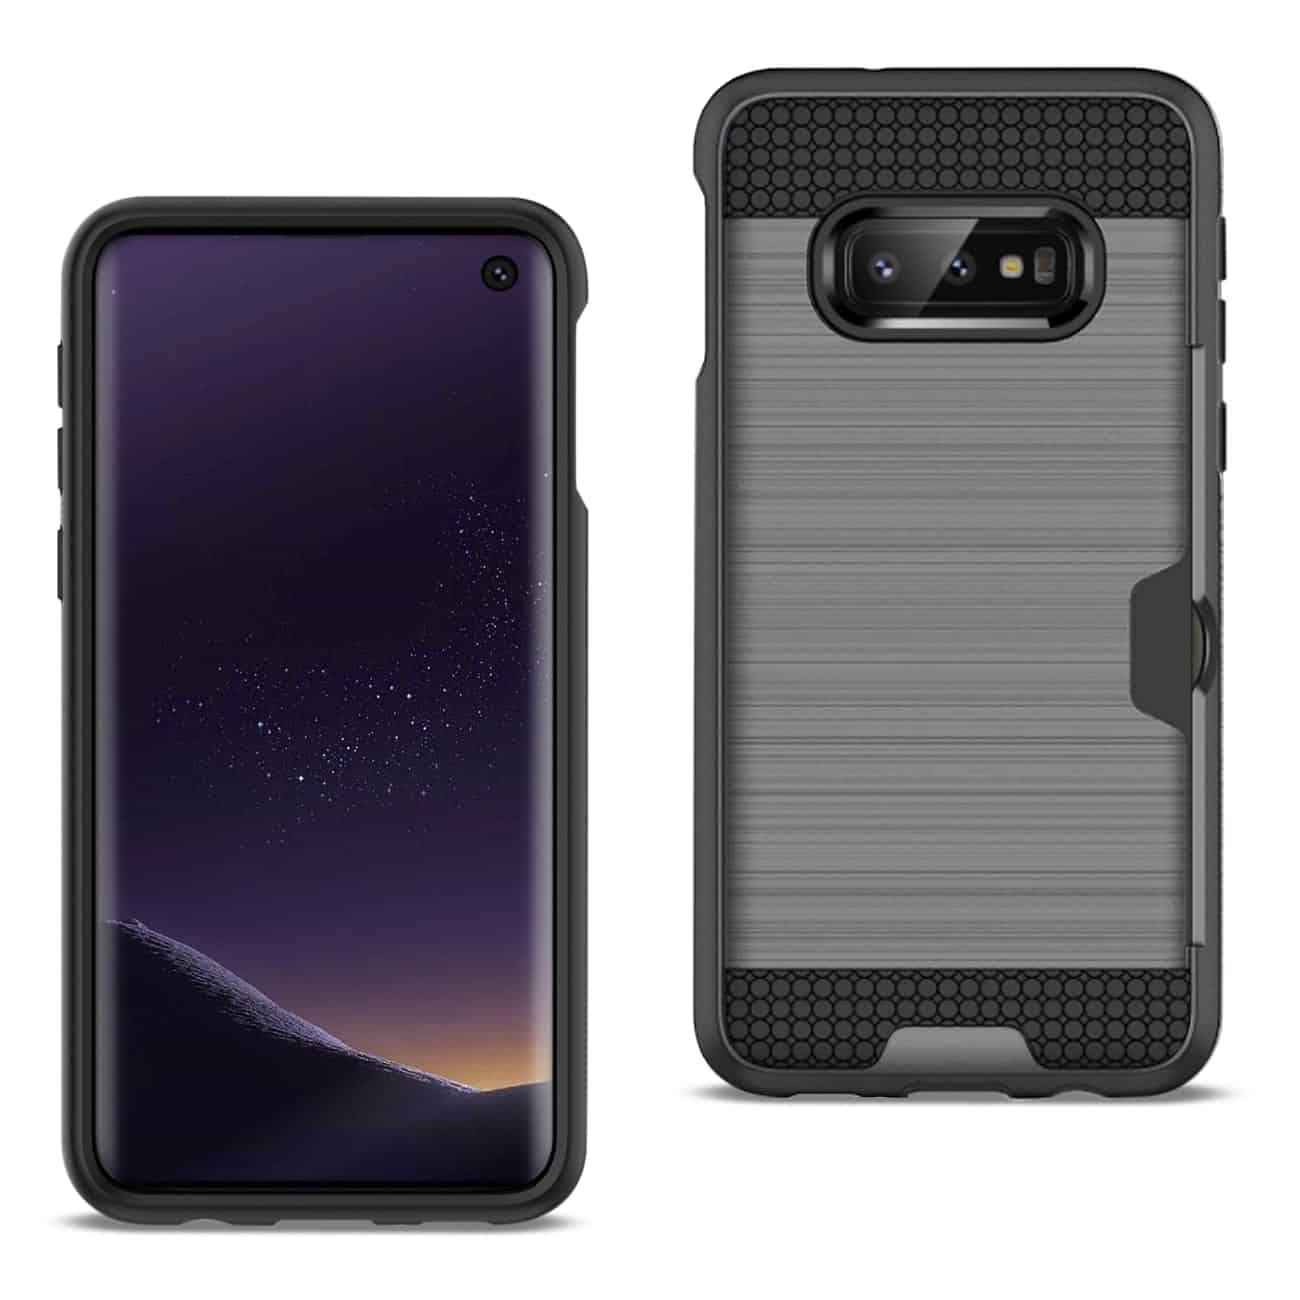 SAMSUNG GALAXY S10 Lite(S10e) Slim Armor Hybrid Case With Card Holder In Gray